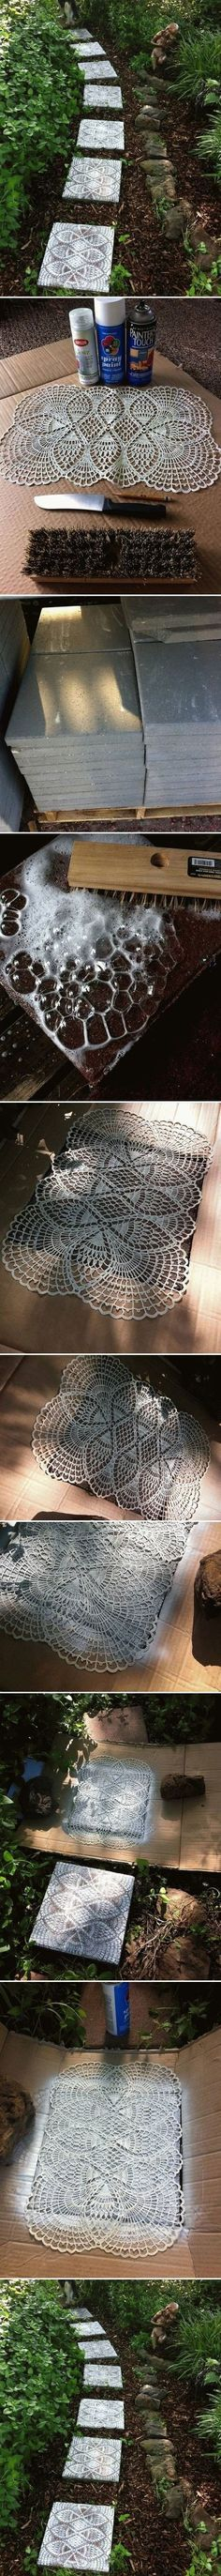 DIY Lace Like Stepping Stones                                                                                                                                                     More